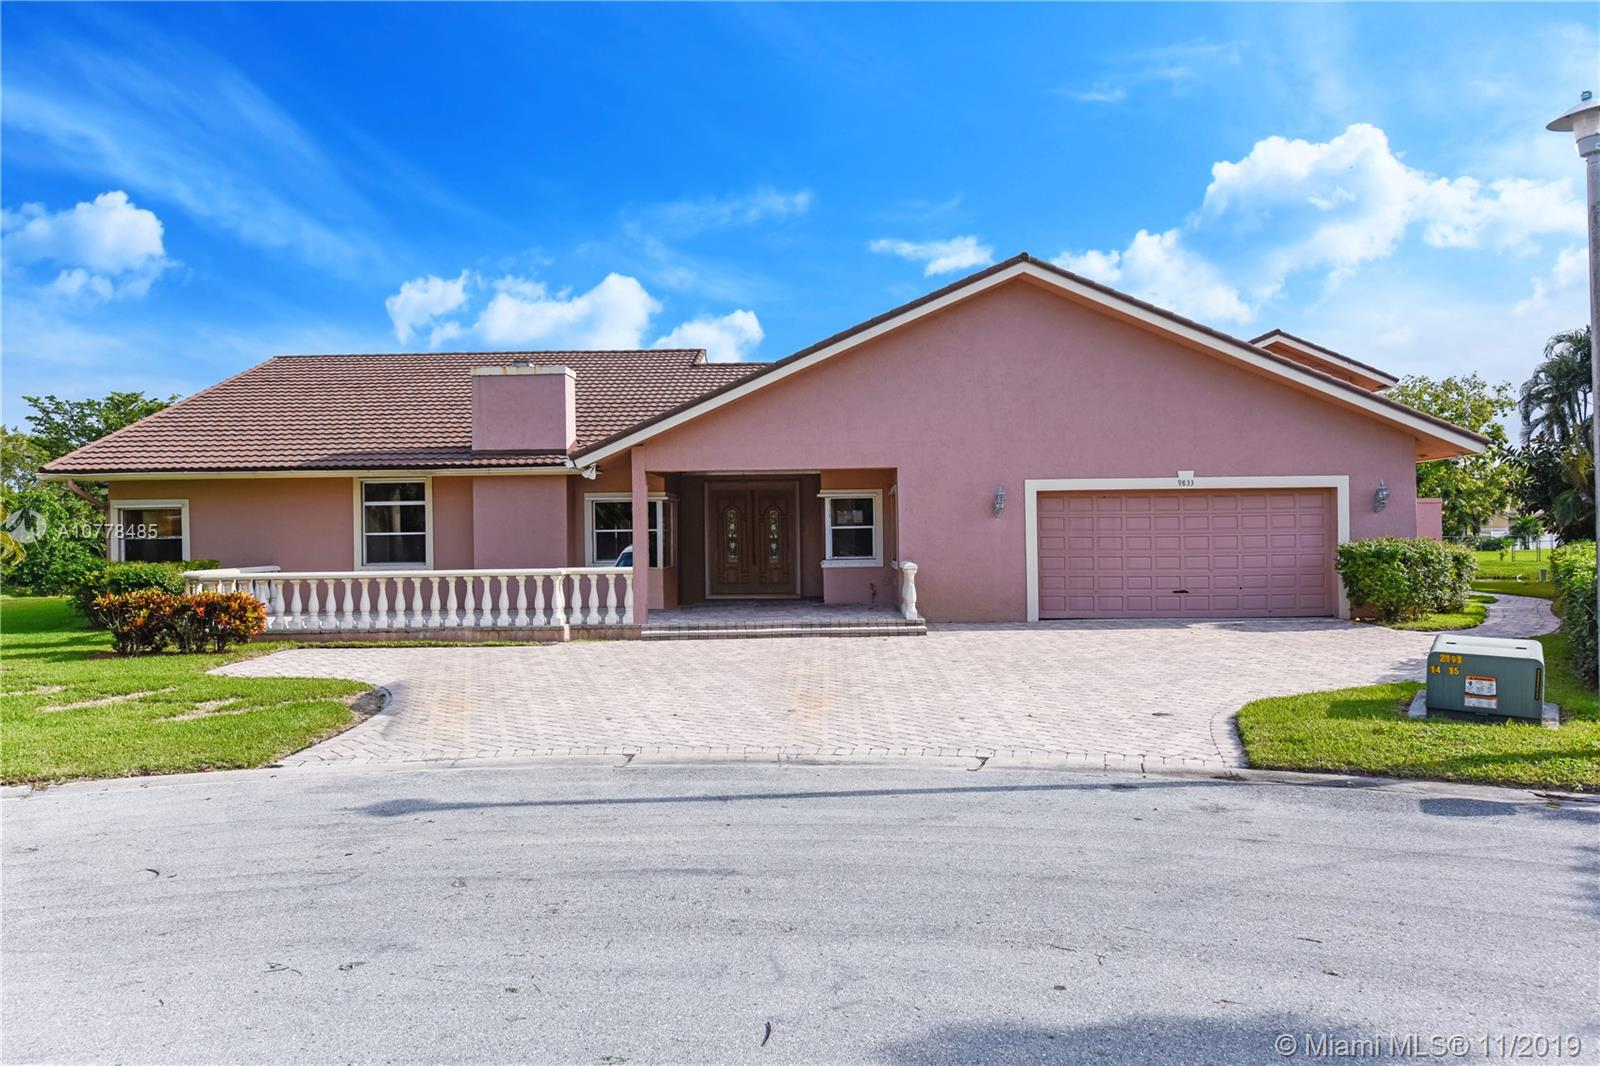 9833 NW 13th Ct, Coral Springs, FL 33071